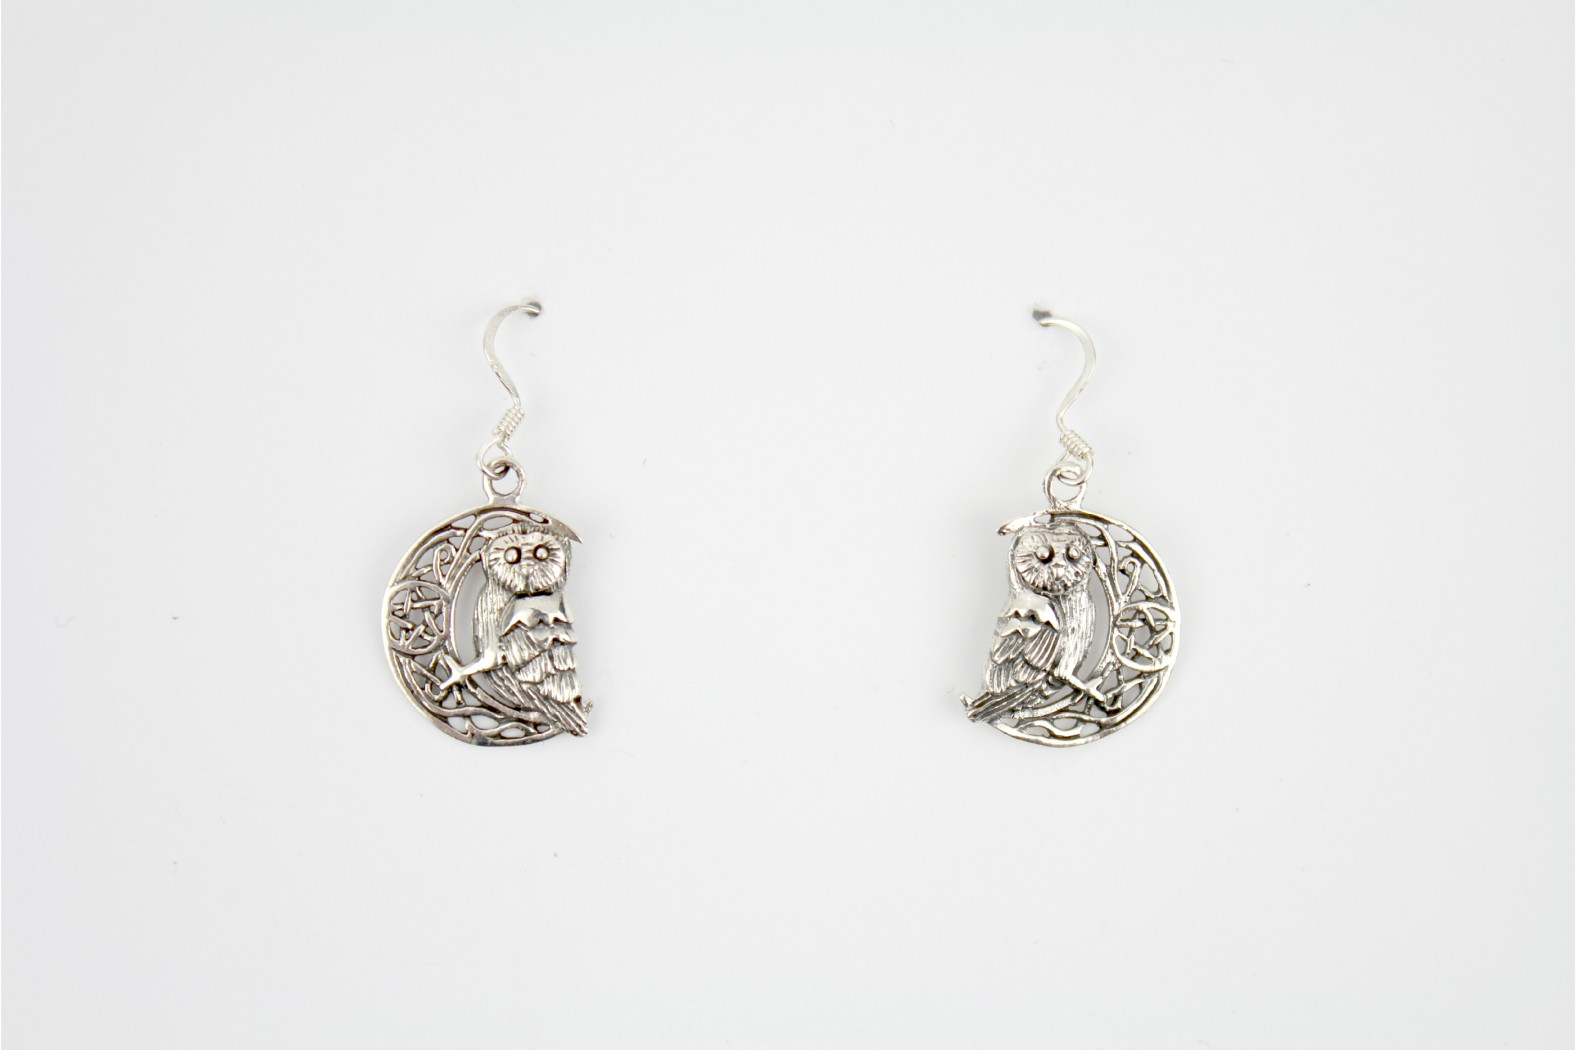 Owl on the moon style drop earrings mounted on silver detailing